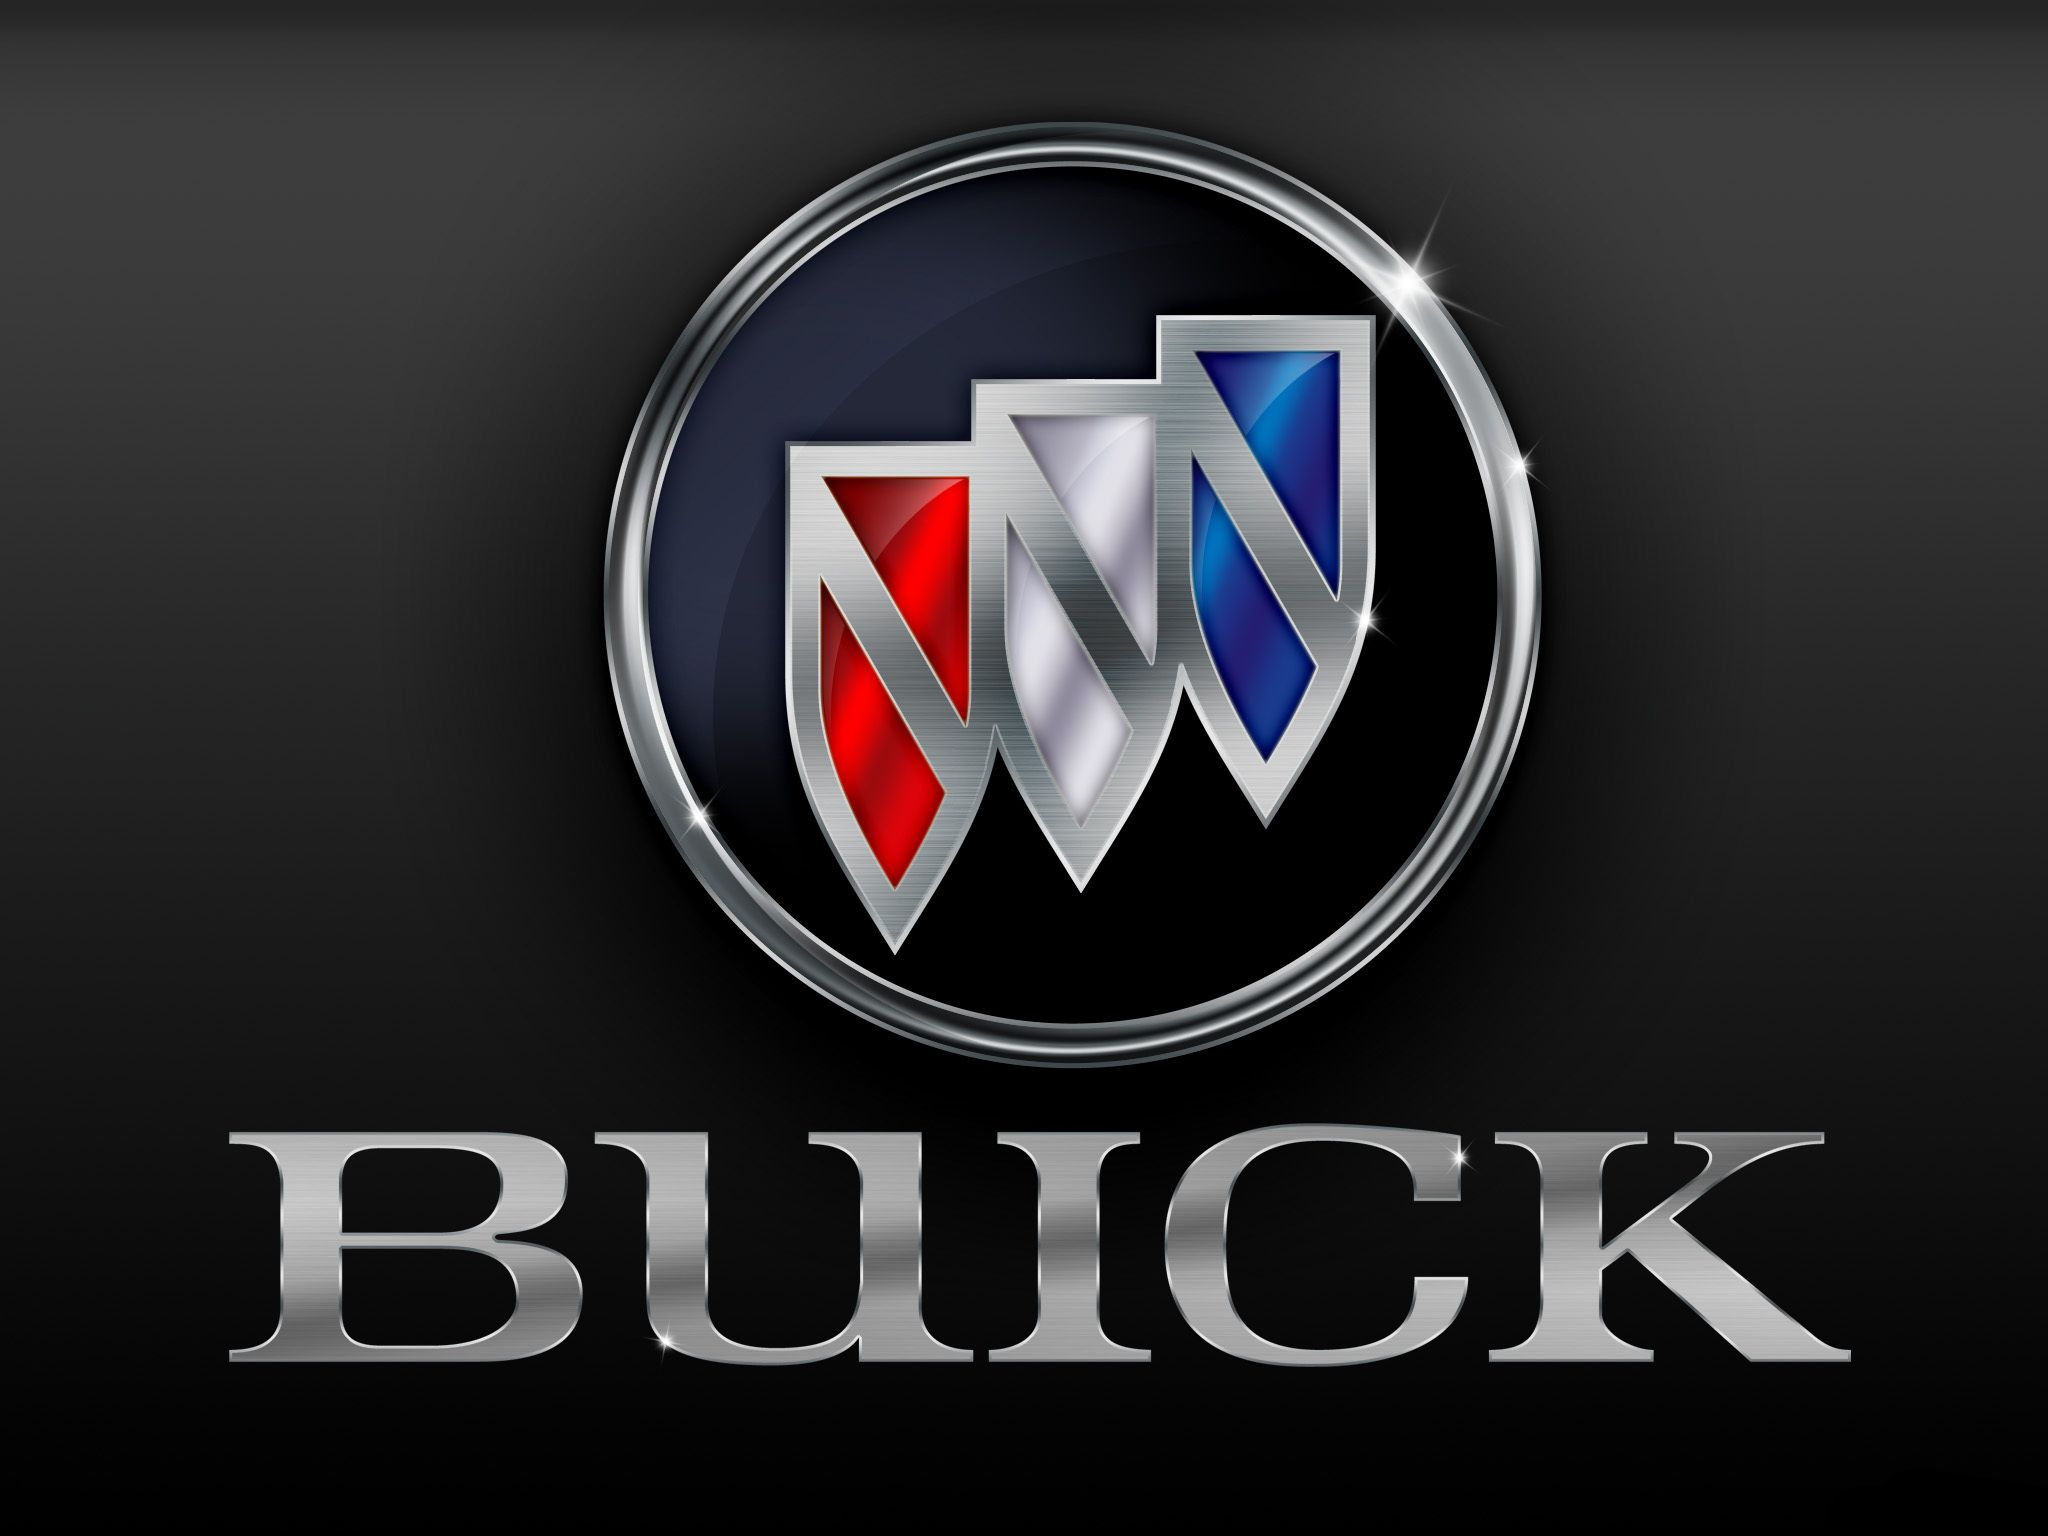 Buick Logo Buick Car Symbol Meaning And History Car Brand Names Com